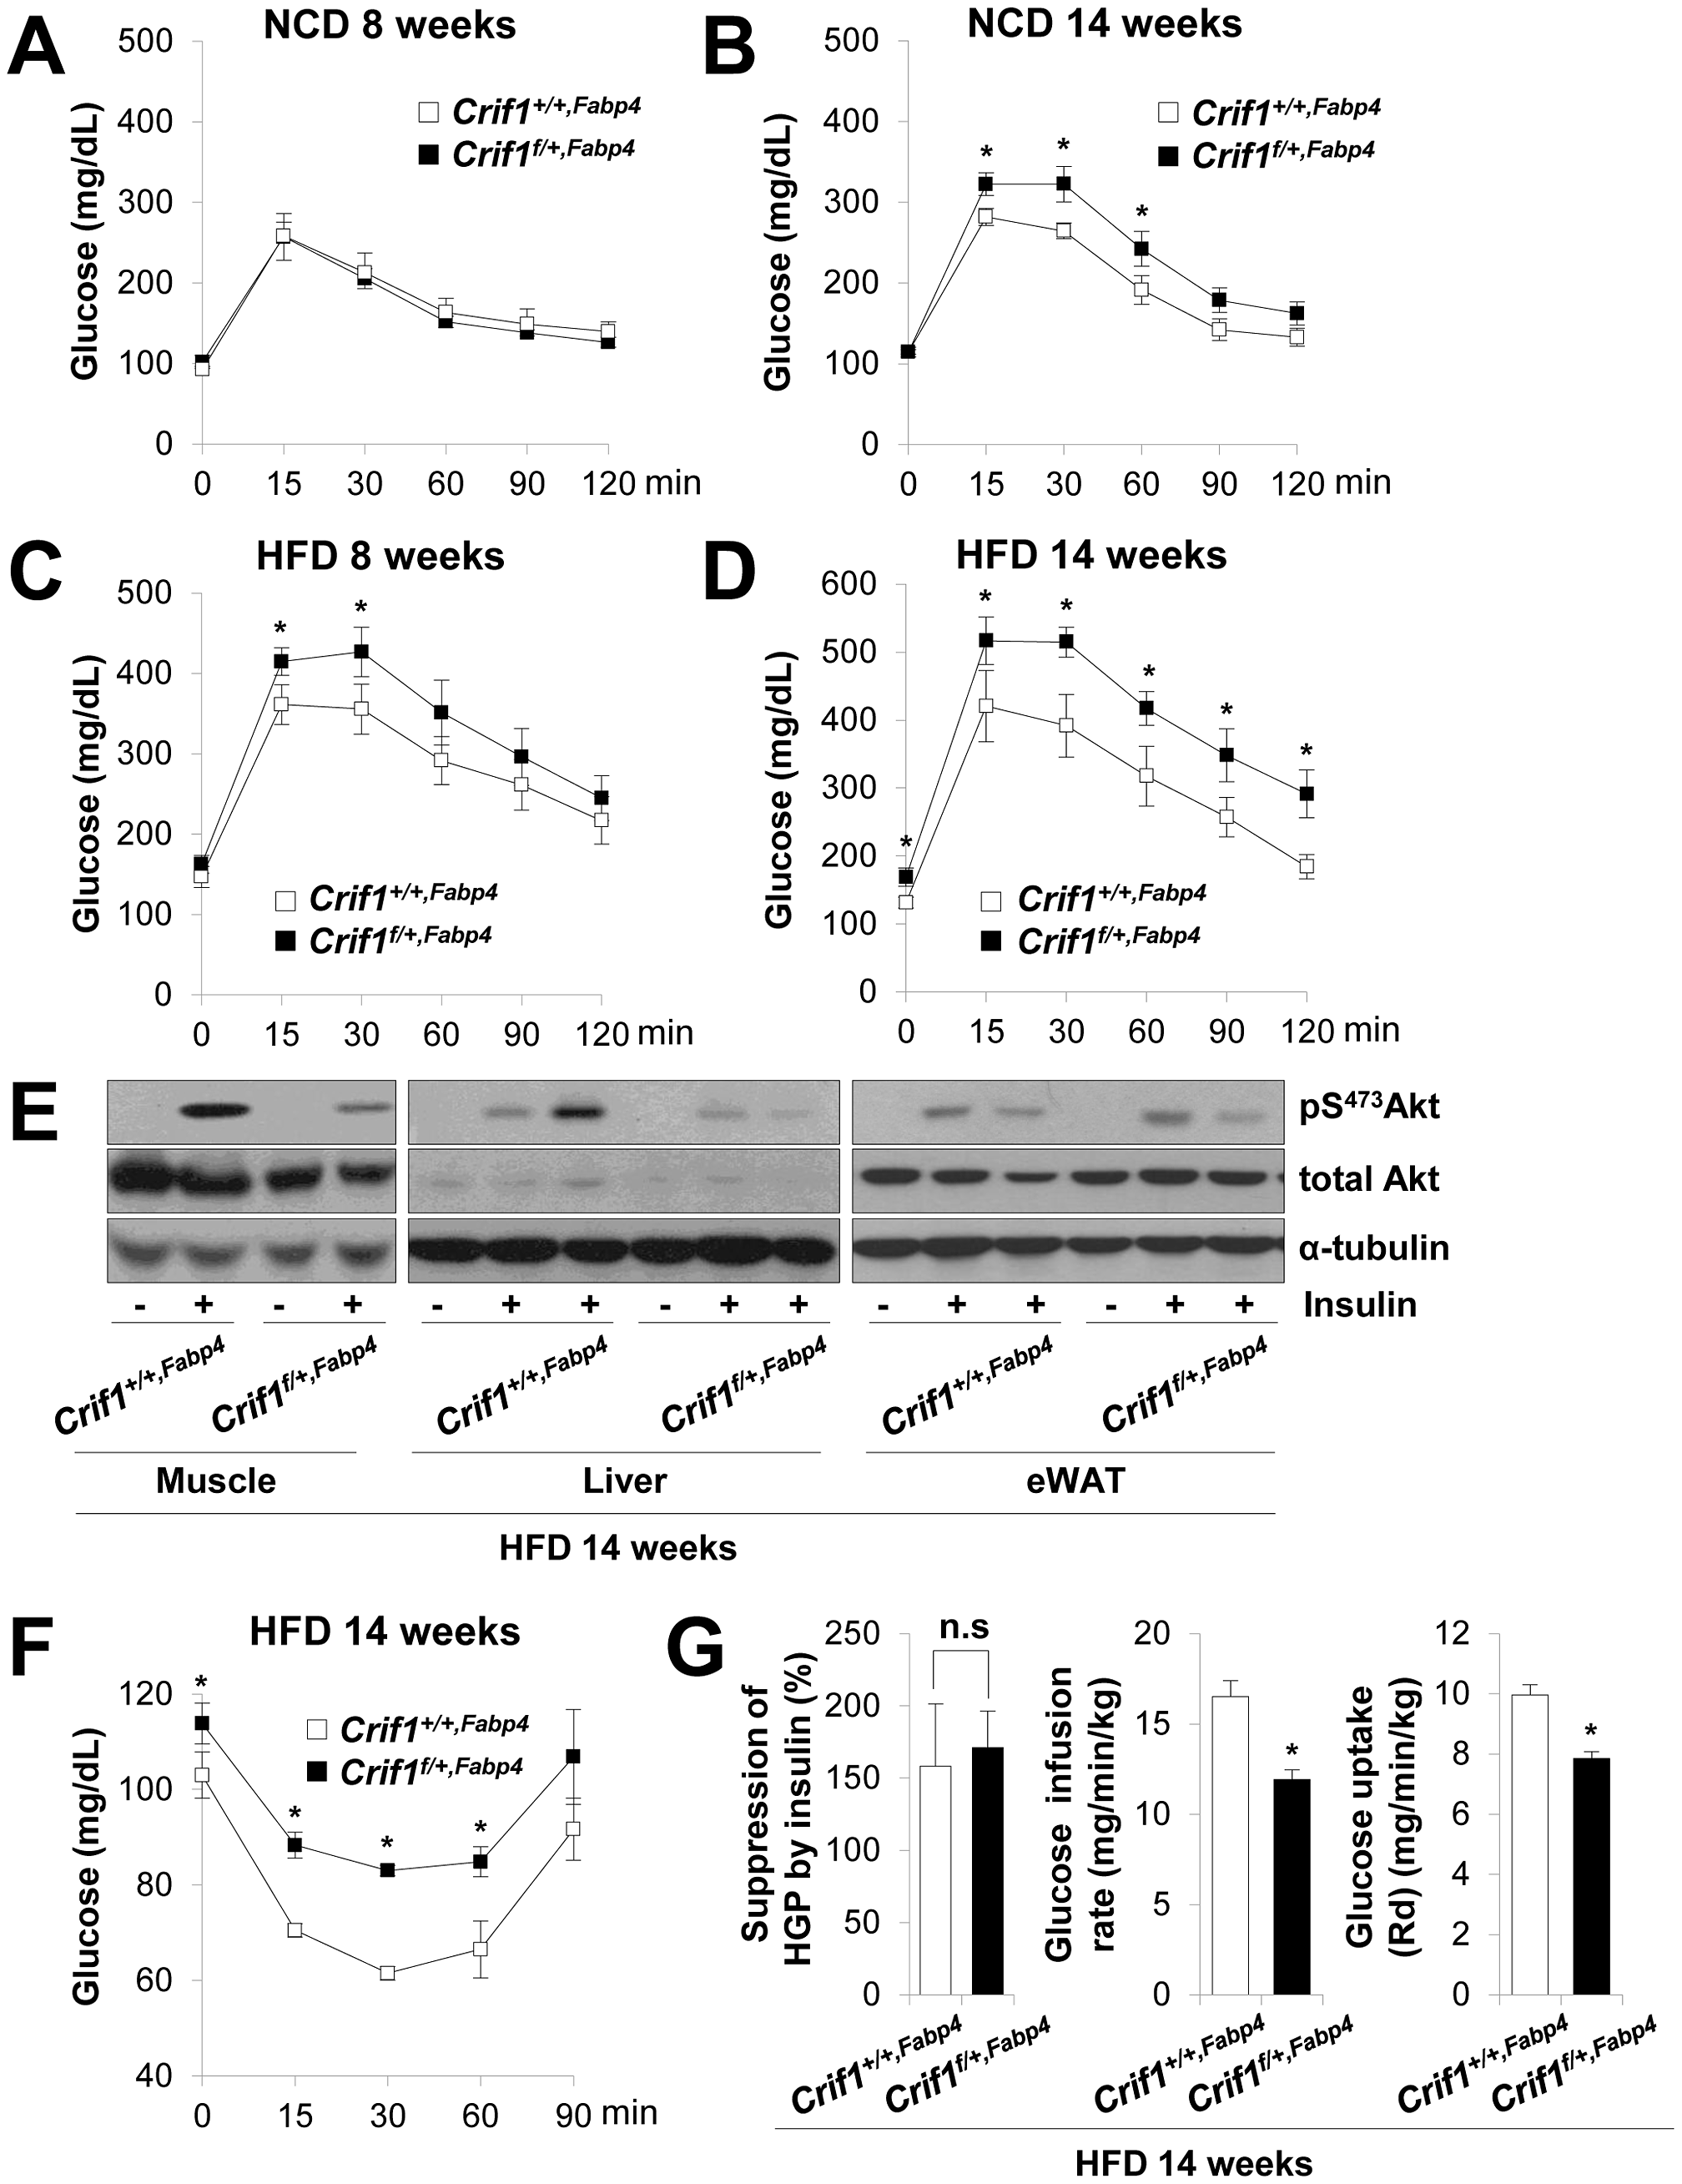 Metabolic phenotypes and insulin resistance in <i>Crif1<sup>f/+,Fabp4</sup></i> mice.